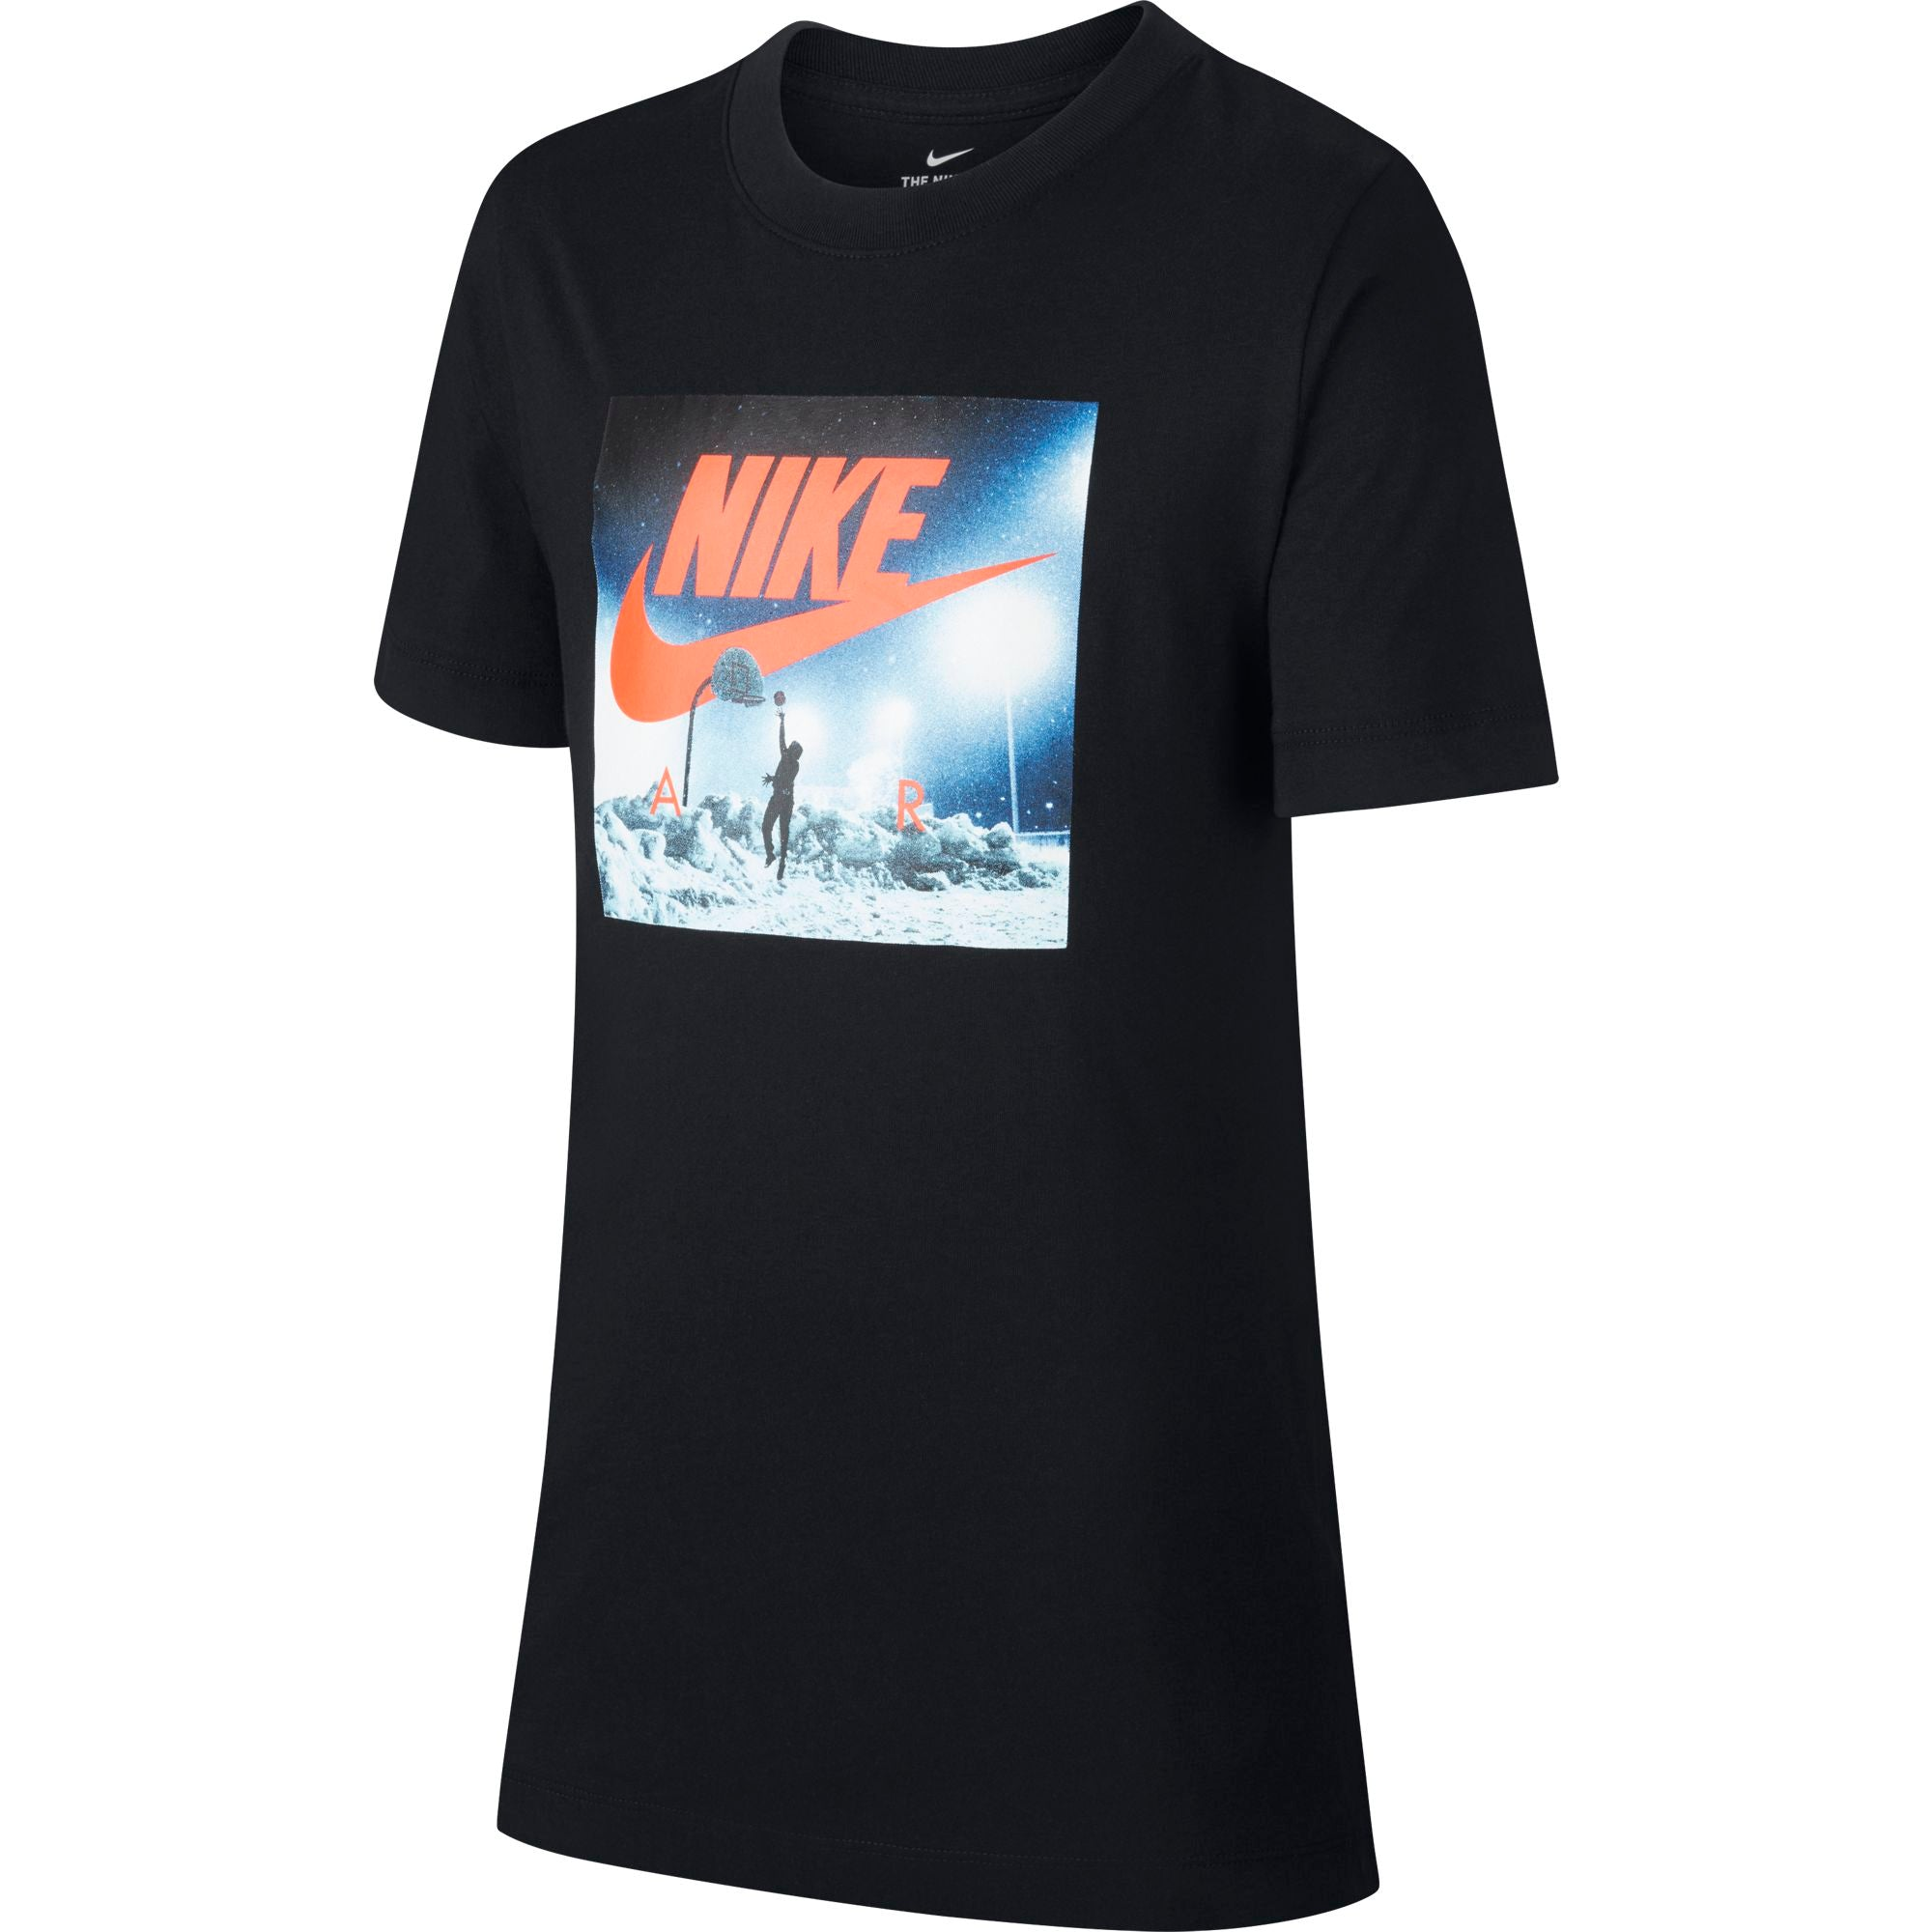 Nike Kids Ready To Play Tee - NK-CK5771-010